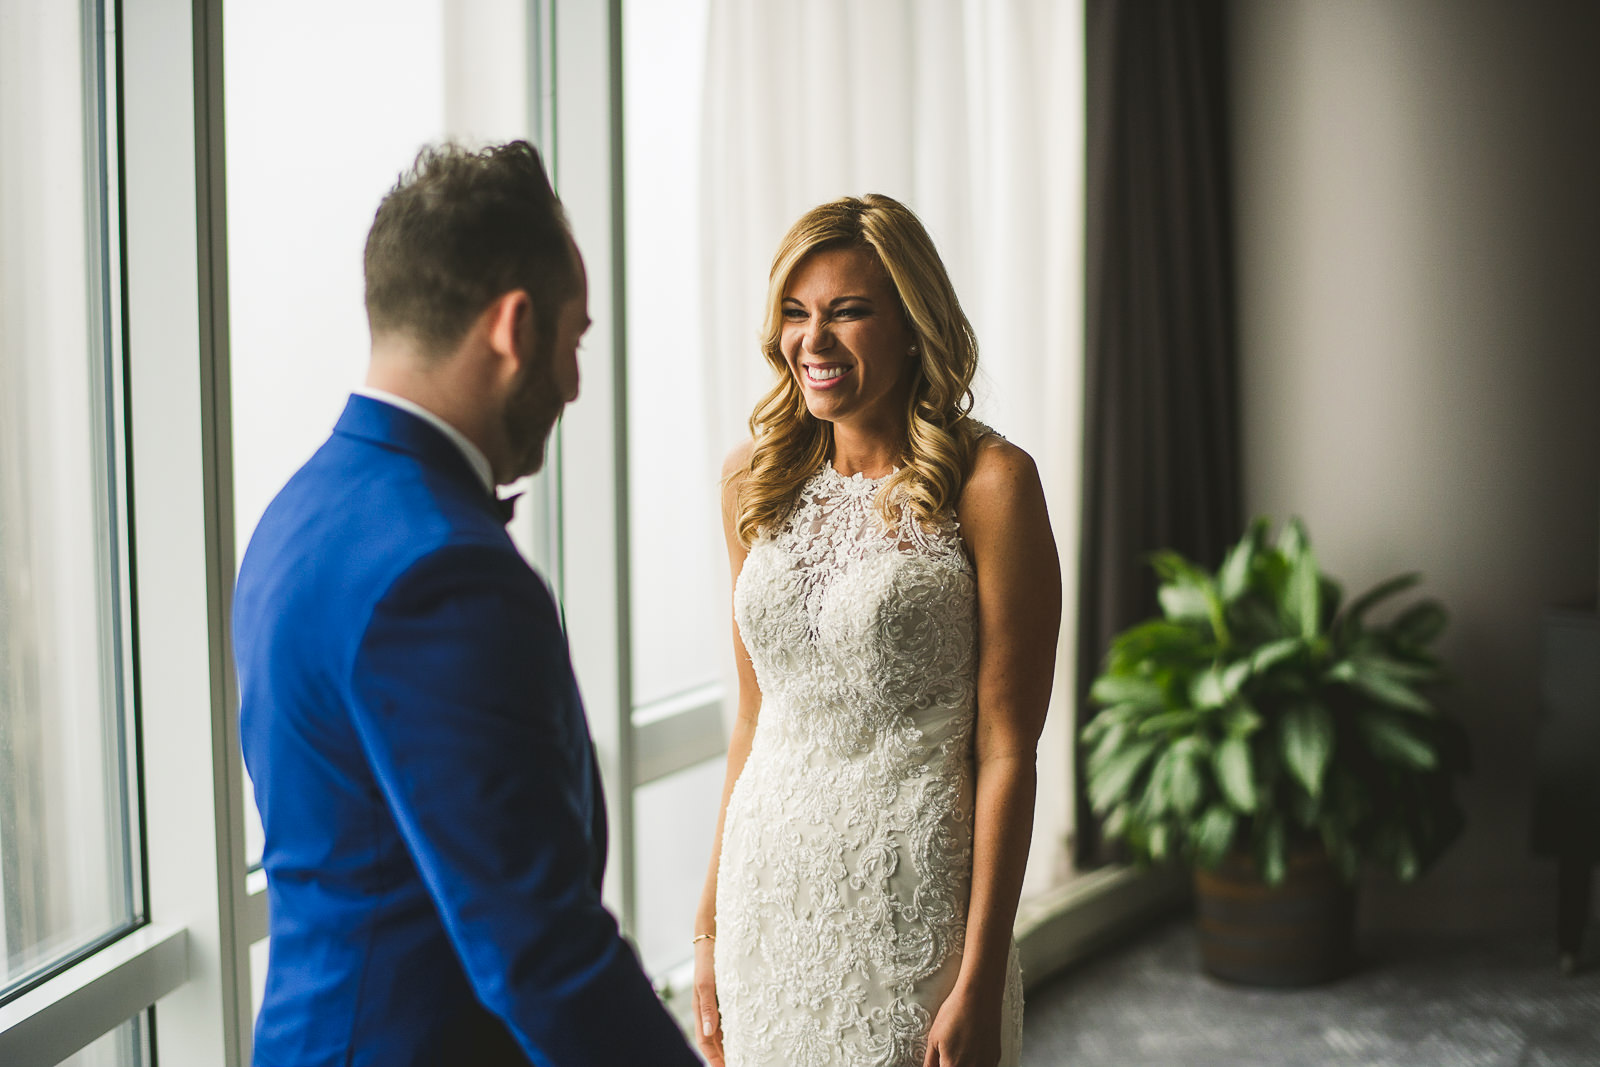 16 first look at trump tower in chicago - Chicago Wedding Photography at Gallery 1028 // Courtnie + David